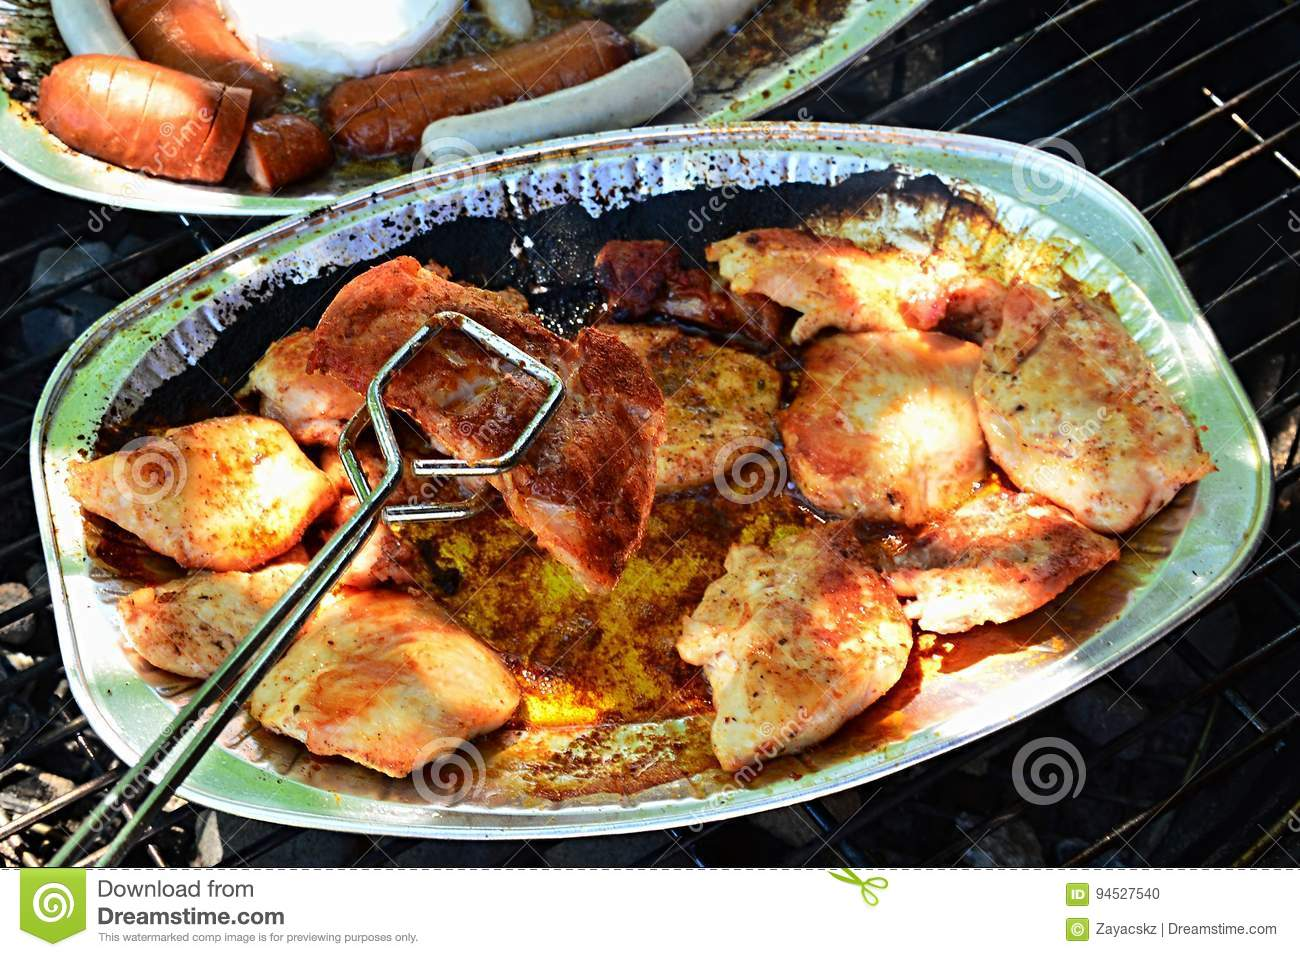 Stainless steel barbecue tongs holding crunchy grilled chicken breast above alluminium plate, sausage and camembert plate in backg